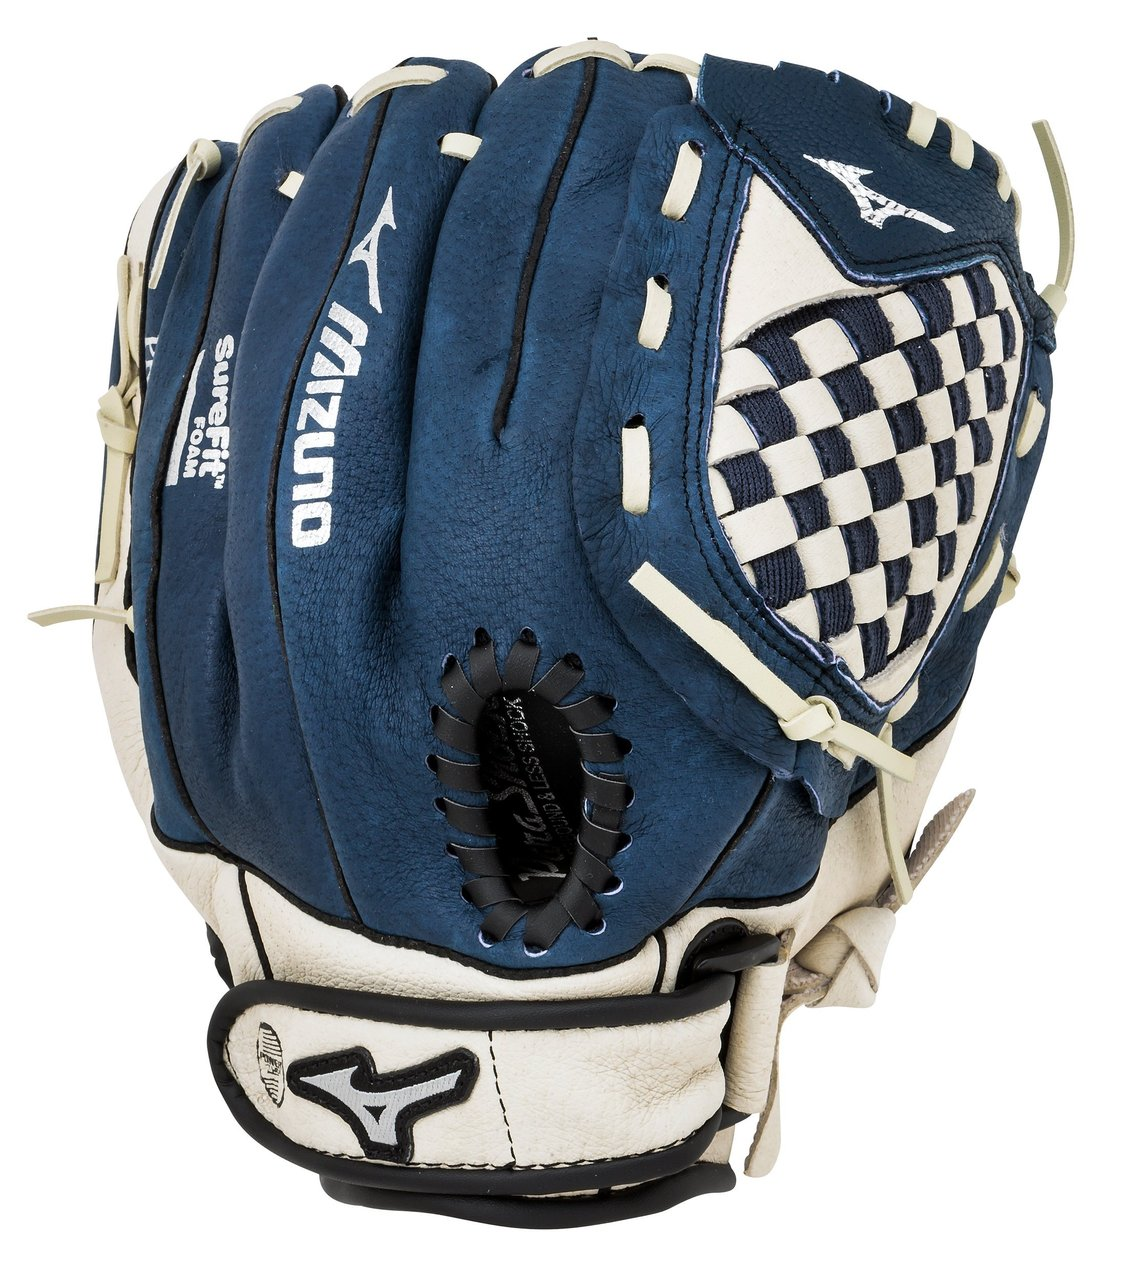 mizuno-prospect-series-11-inch-gpp1100y1-navy-youth-baseball-glove-right-handed-throw GPP1100Y1NY-Right Handed Throw Mizuno 041969127872 Mizuno Prospect Series Baseball Glove for Youth Baseball Player. Size 11